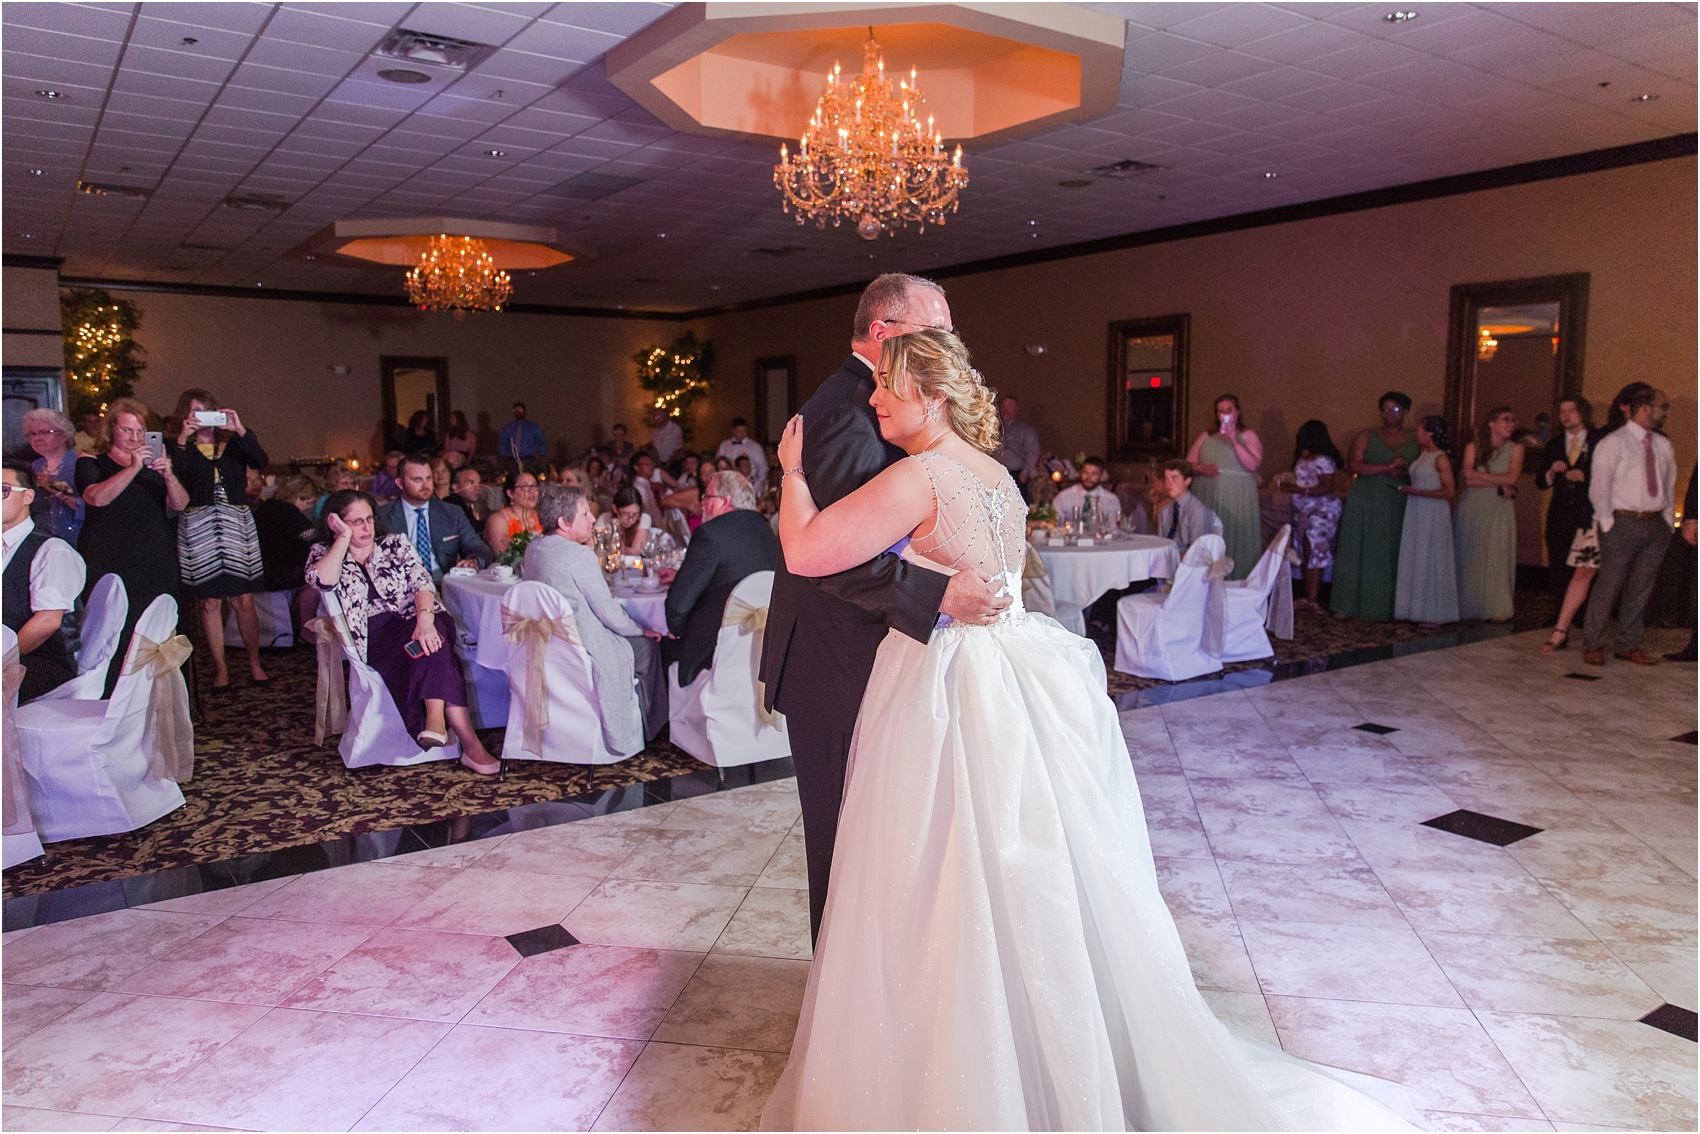 lord-of-the-rings-inspired-wedding-photos-at-crystal-gardens-in-howell-mi-by-courtney-carolyn-photography_0085.jpg